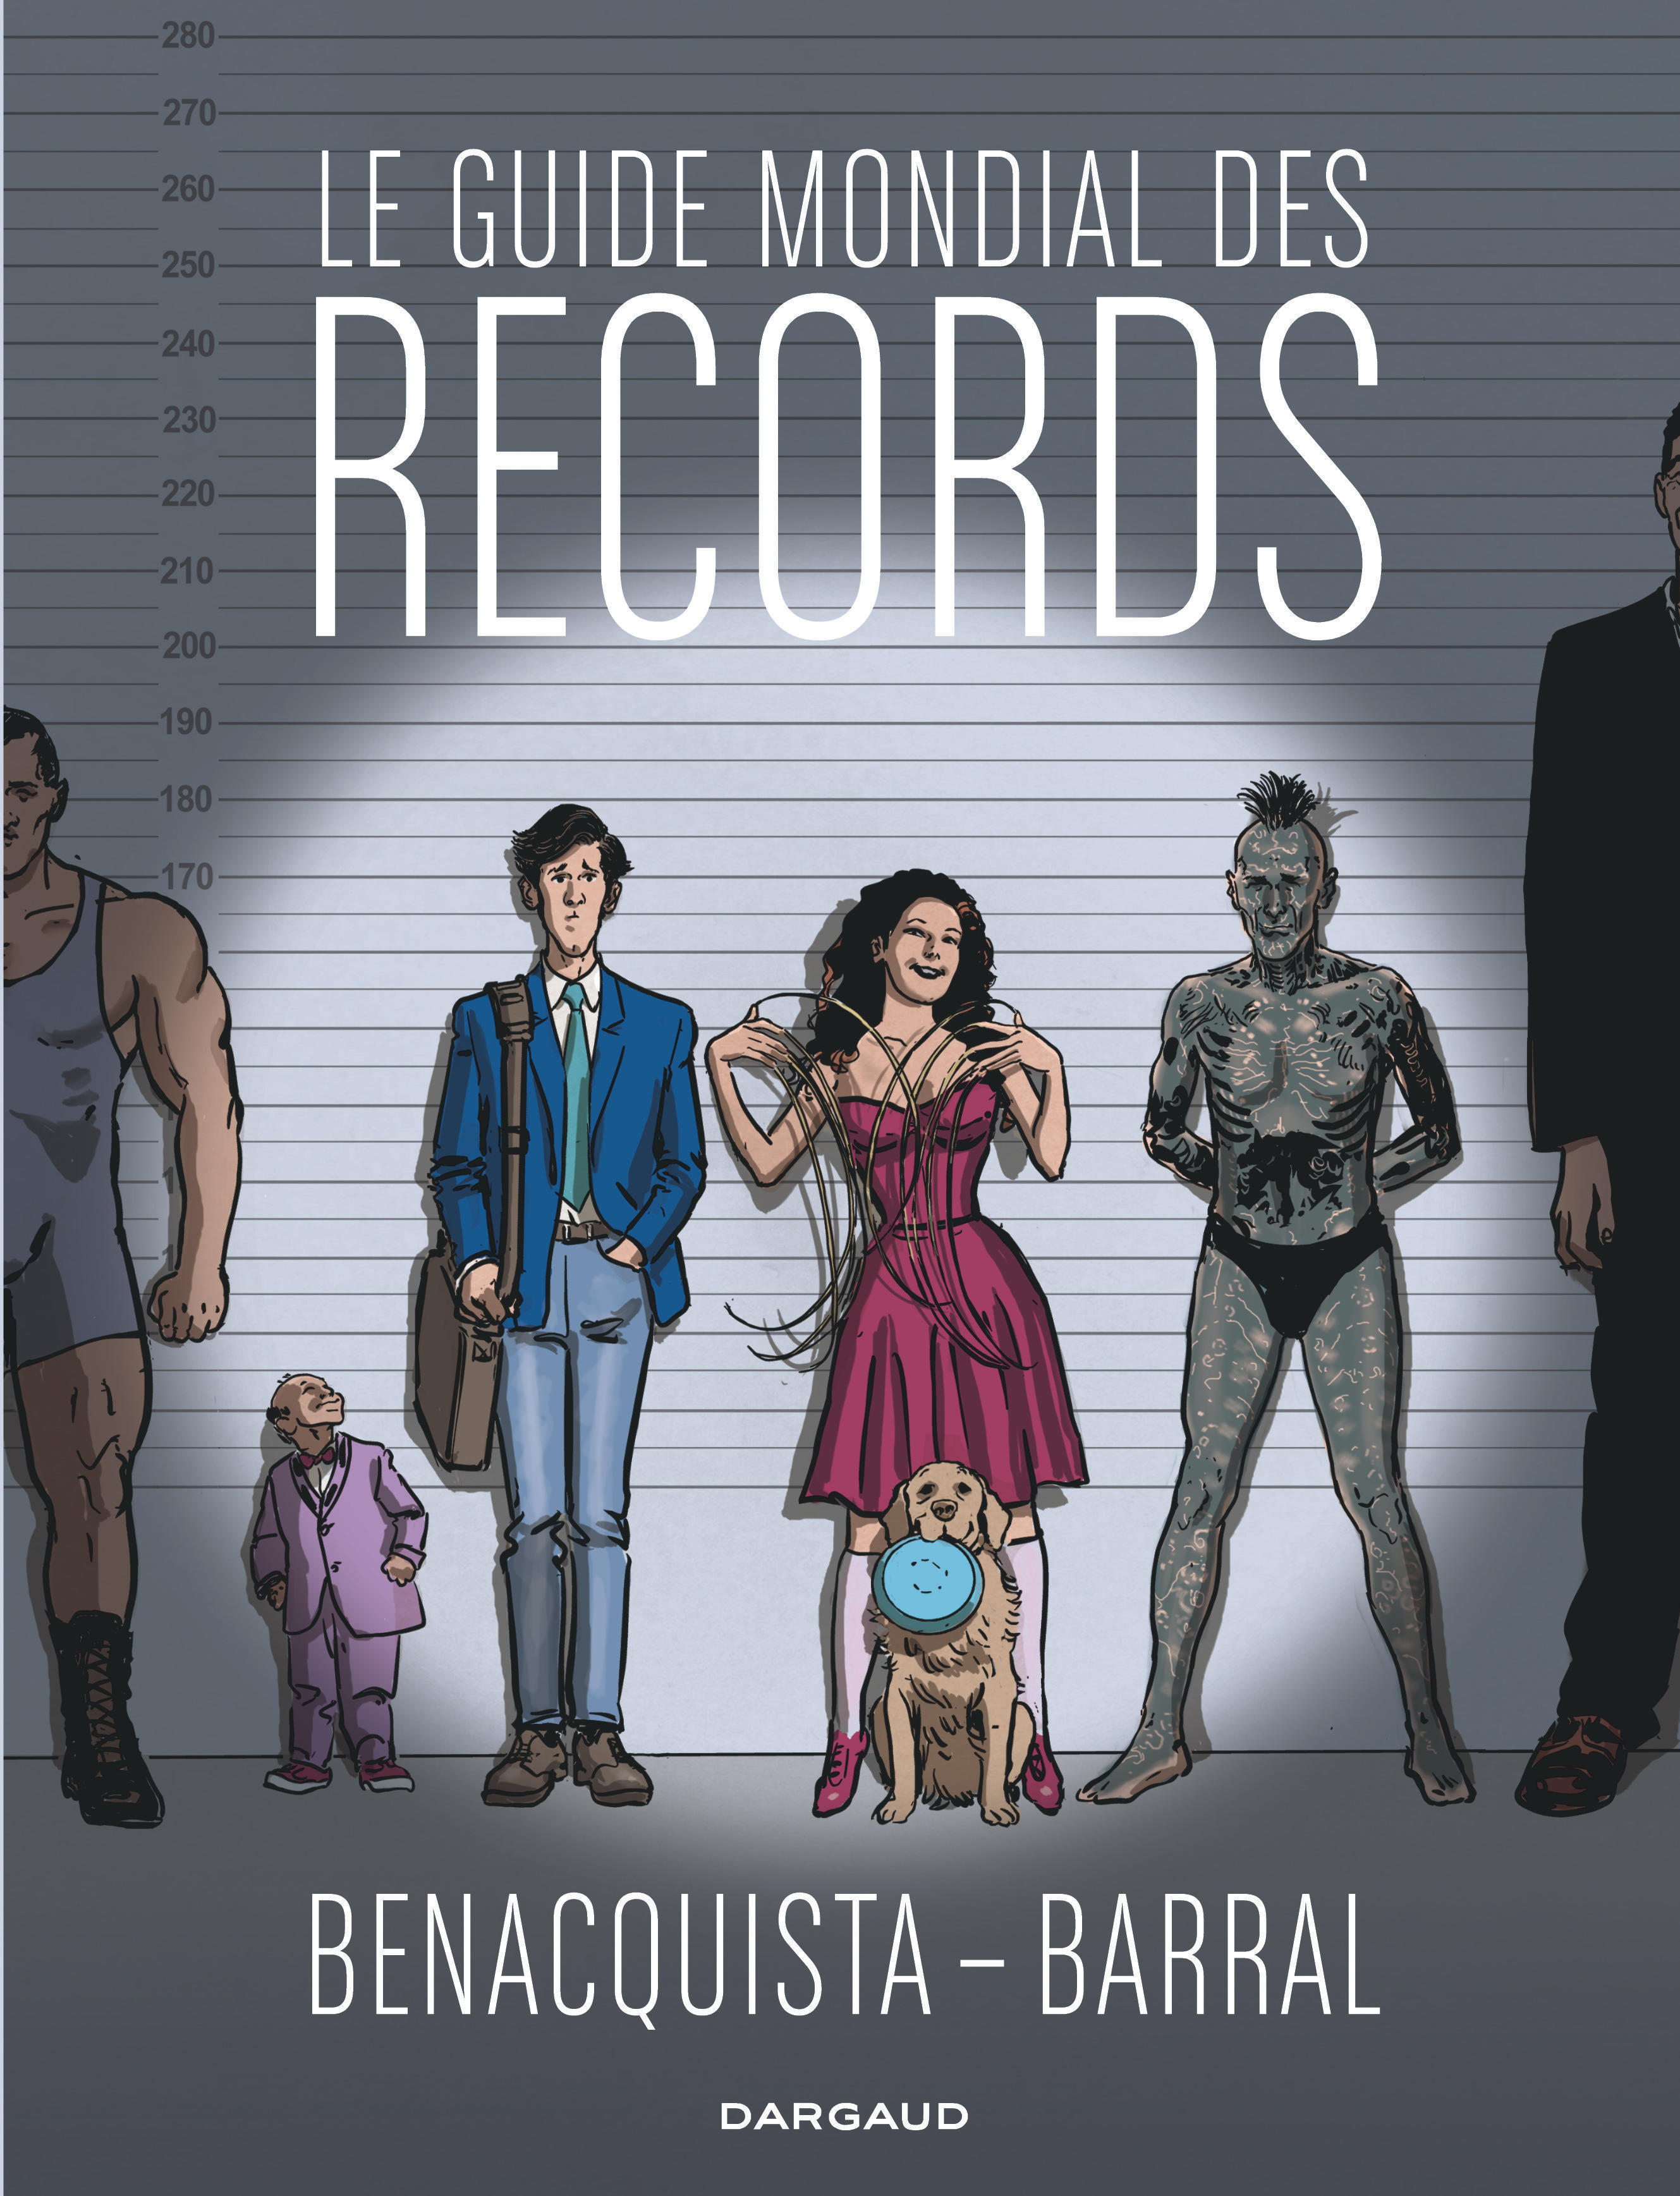 LE GUIDE MONDIAL DES RECORDS T1 LE GUIDE MONDIAL DES RECORDS